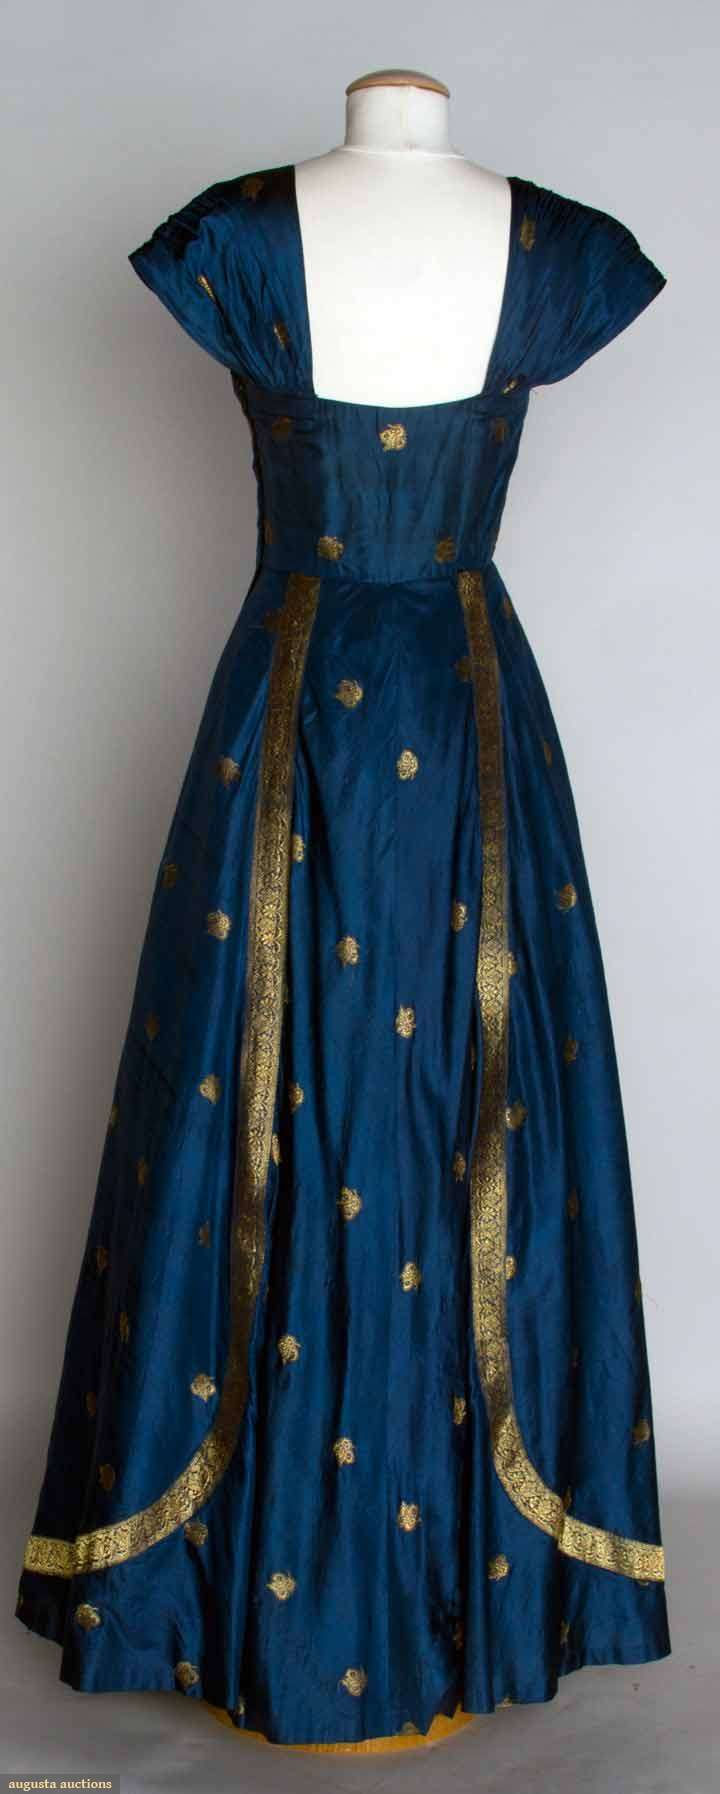 Blue & Gold Evening Dress - Blue silk taffeta with metallic gold brocade, made from an Indian sari - c. 1950 - Back View